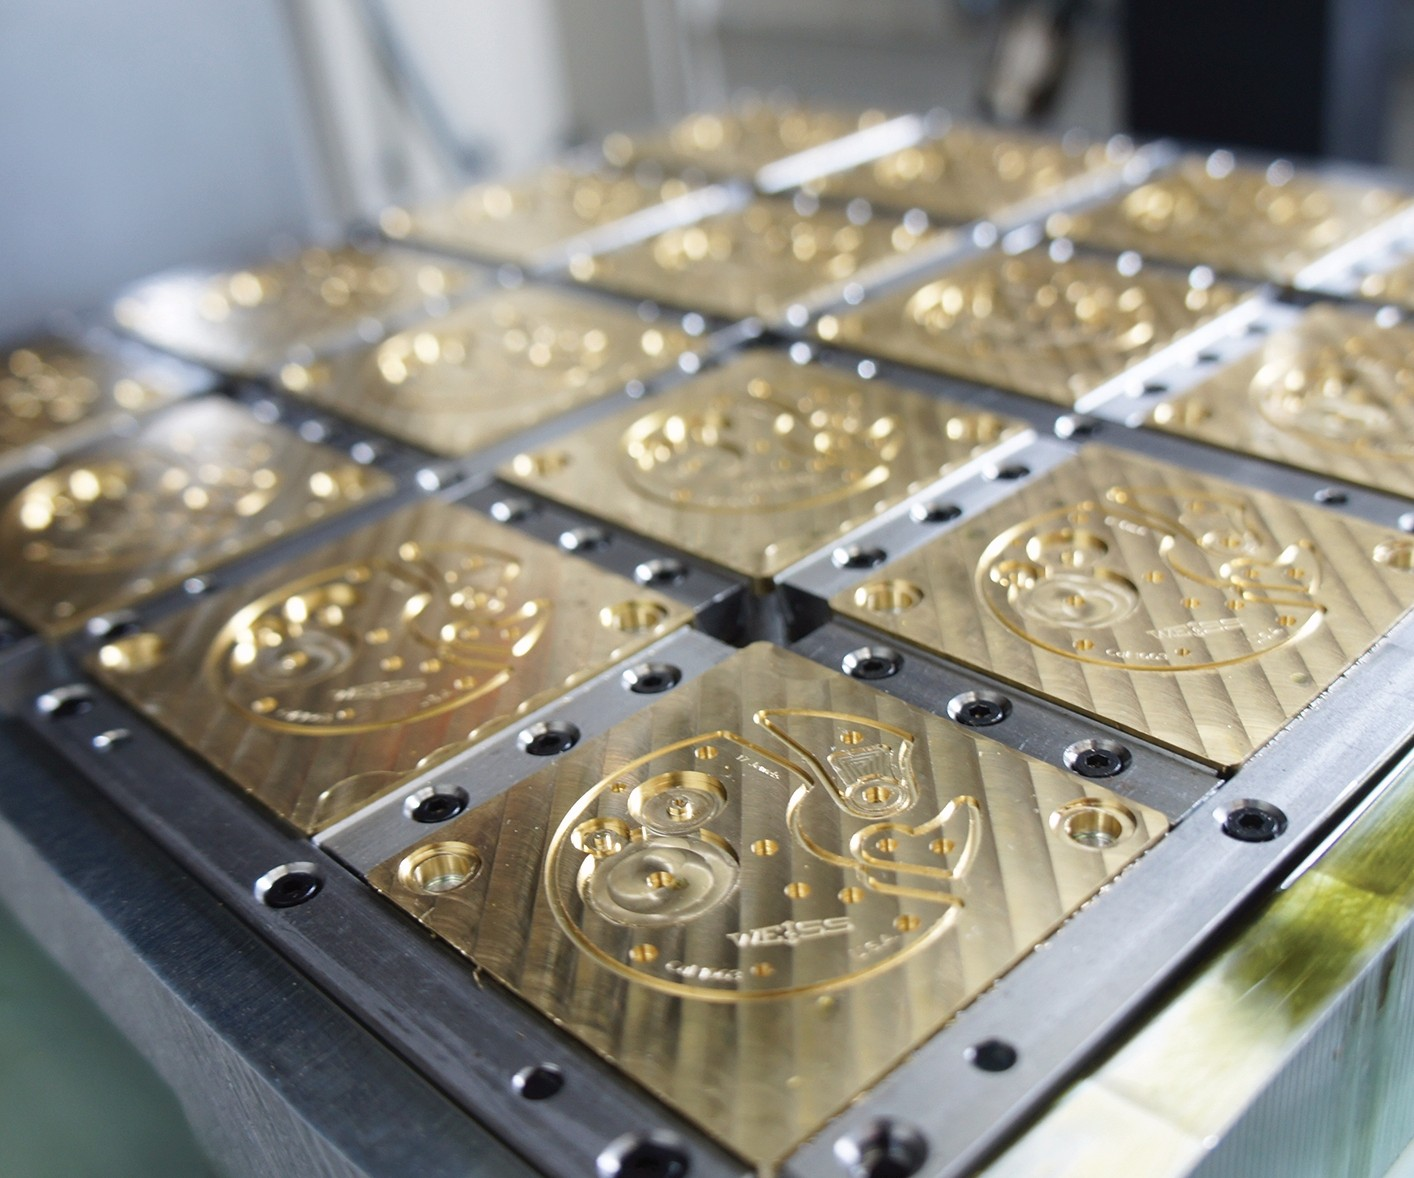 brass bridge workpieces after profile machining in a 16-station custom fixture